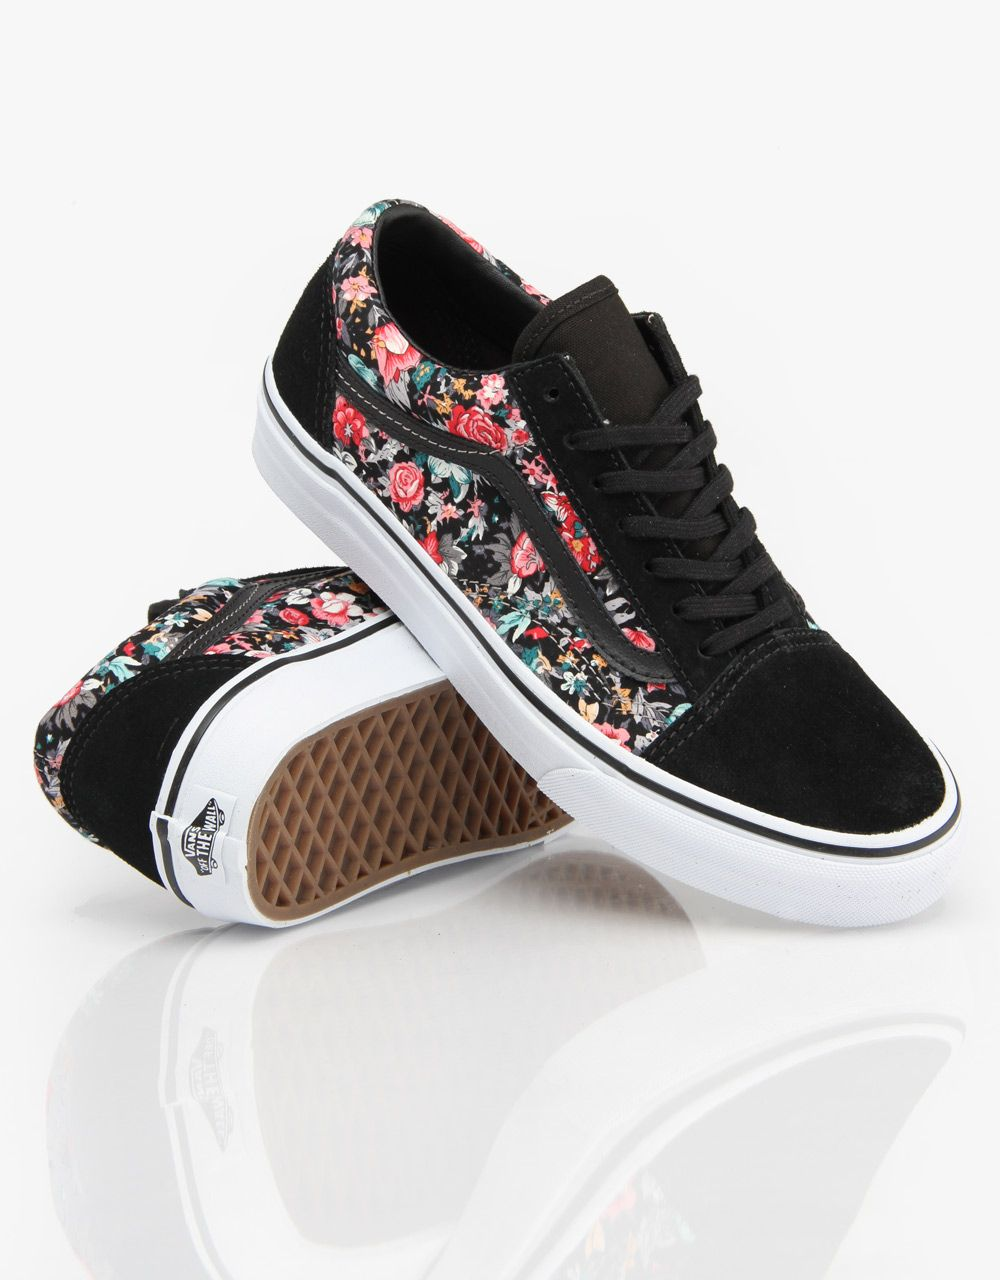 Vans Old Skool Girls Skate Shoes Multi FloralBlackTrue